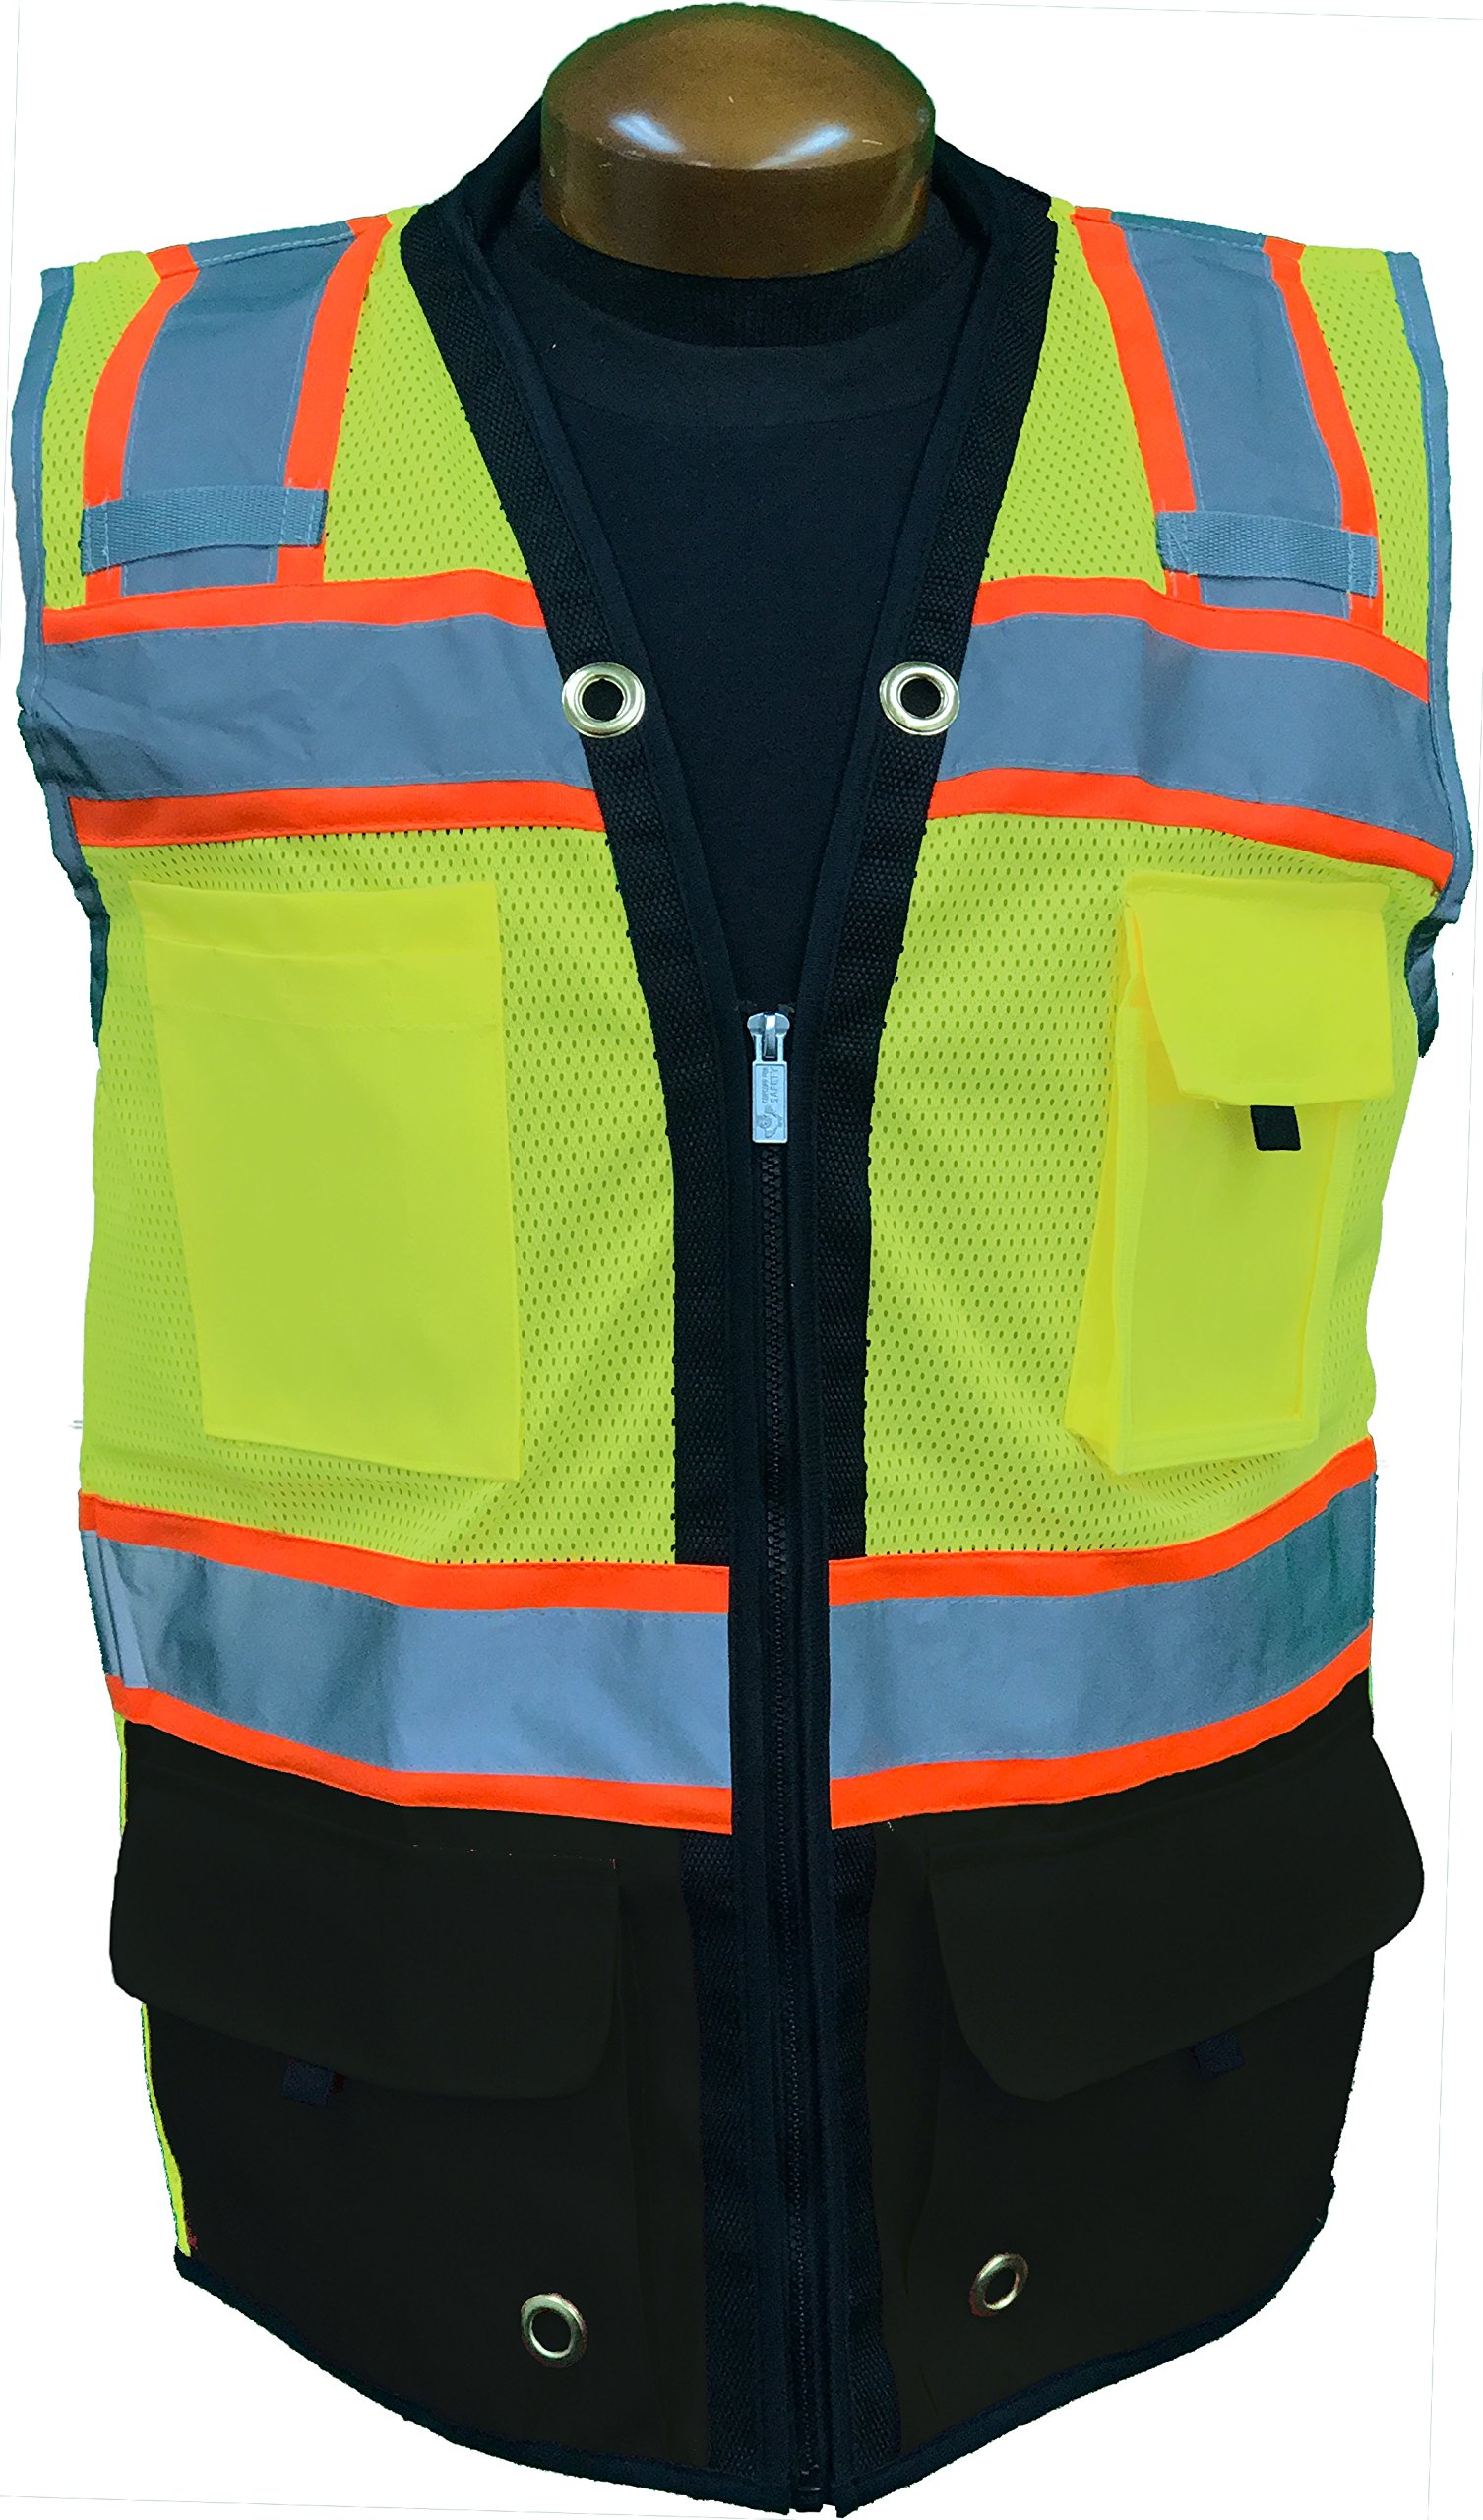 SHINE BRIGHT SV544BK | Premium Surveyor's High Visibility Safety Vest | 2 Tone Lime Black with Reflective Strips | ANSI CLASS 2 | Soft and Breathable |Heavy Duty Zipper Front | Size Large